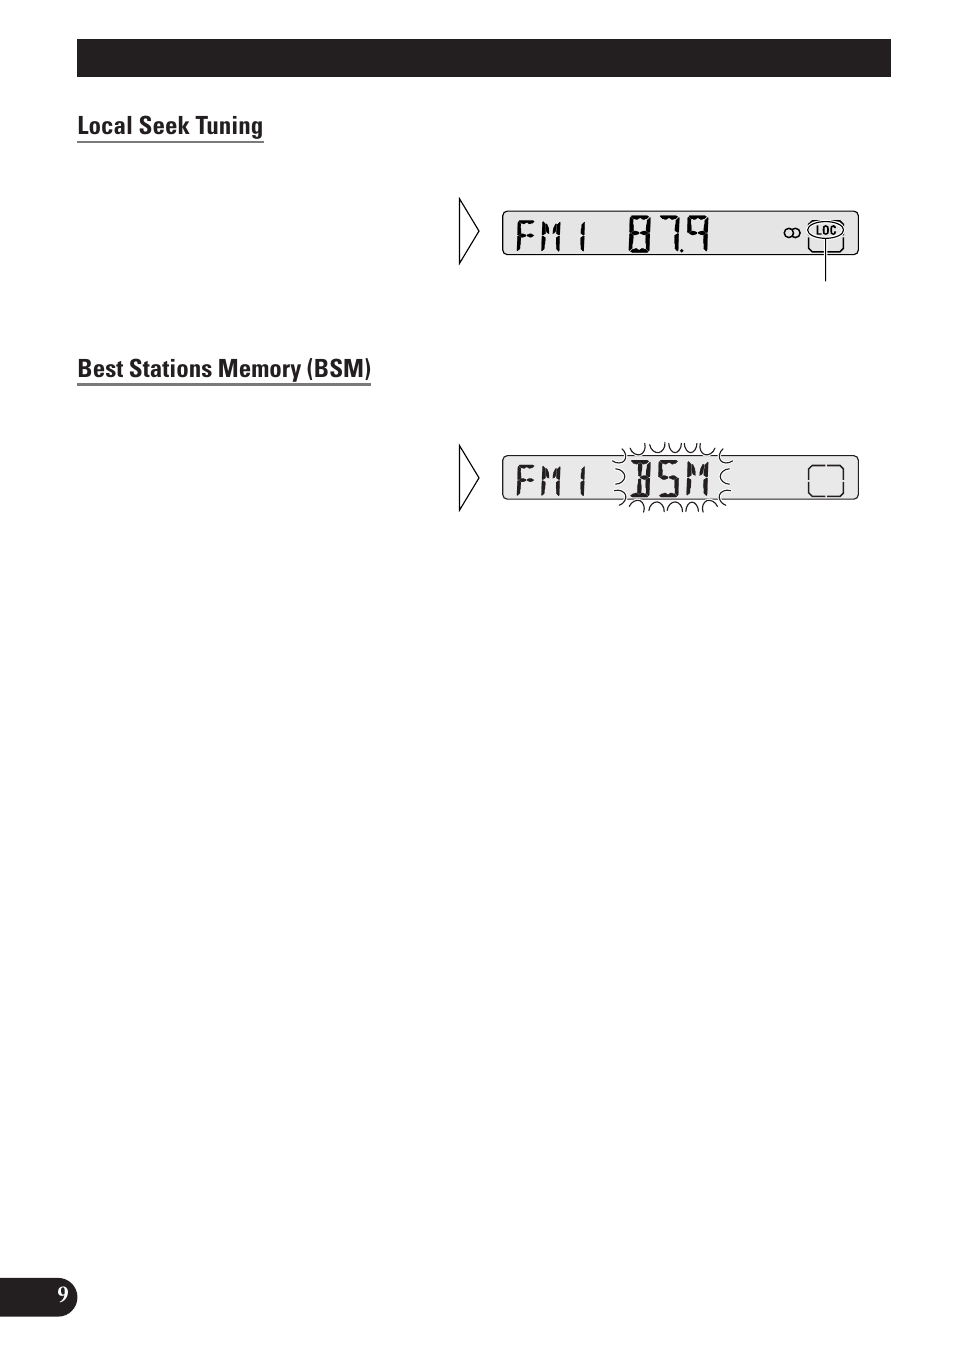 pioneer deh 2100 page10?resize\\\\\\\\\\\\\\\\\\\\\\\\\\\\\\\=665%2C945 pioneer deh 24ub wiring diagram pioneer wiring diagrams pioneer deh 24ub wiring diagram at cos-gaming.co